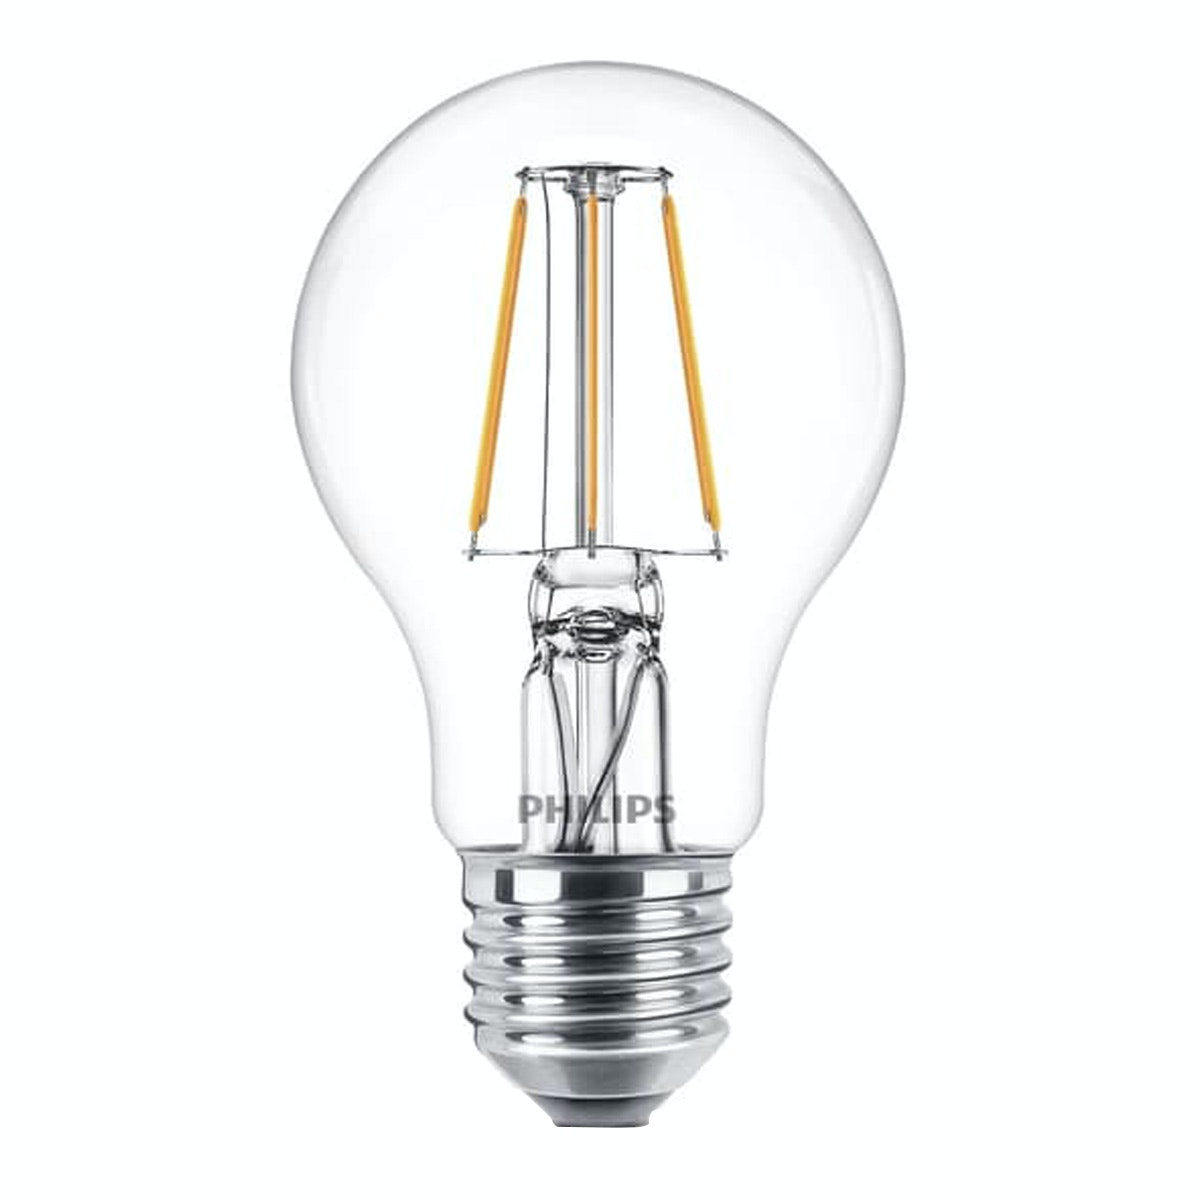 Philips LED Classic 4-50W A60 E27 WW Kuning